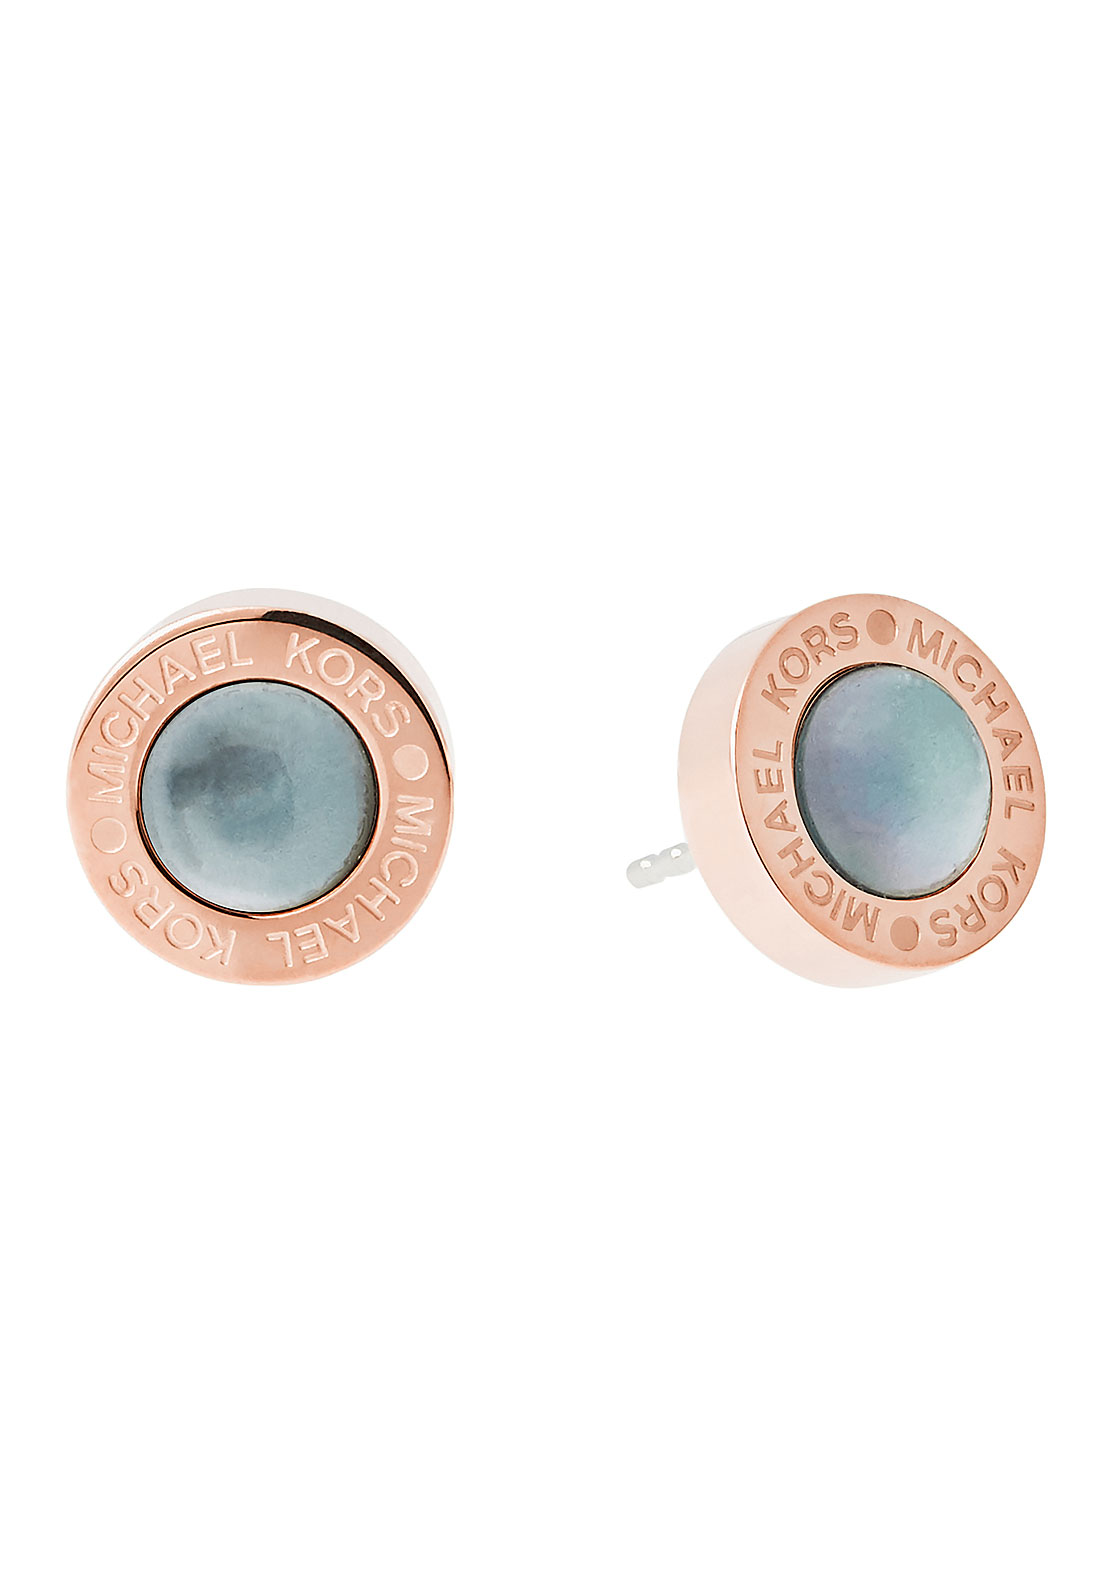 Michael Kors Logo Stone Stud Earrings, Rose Gold